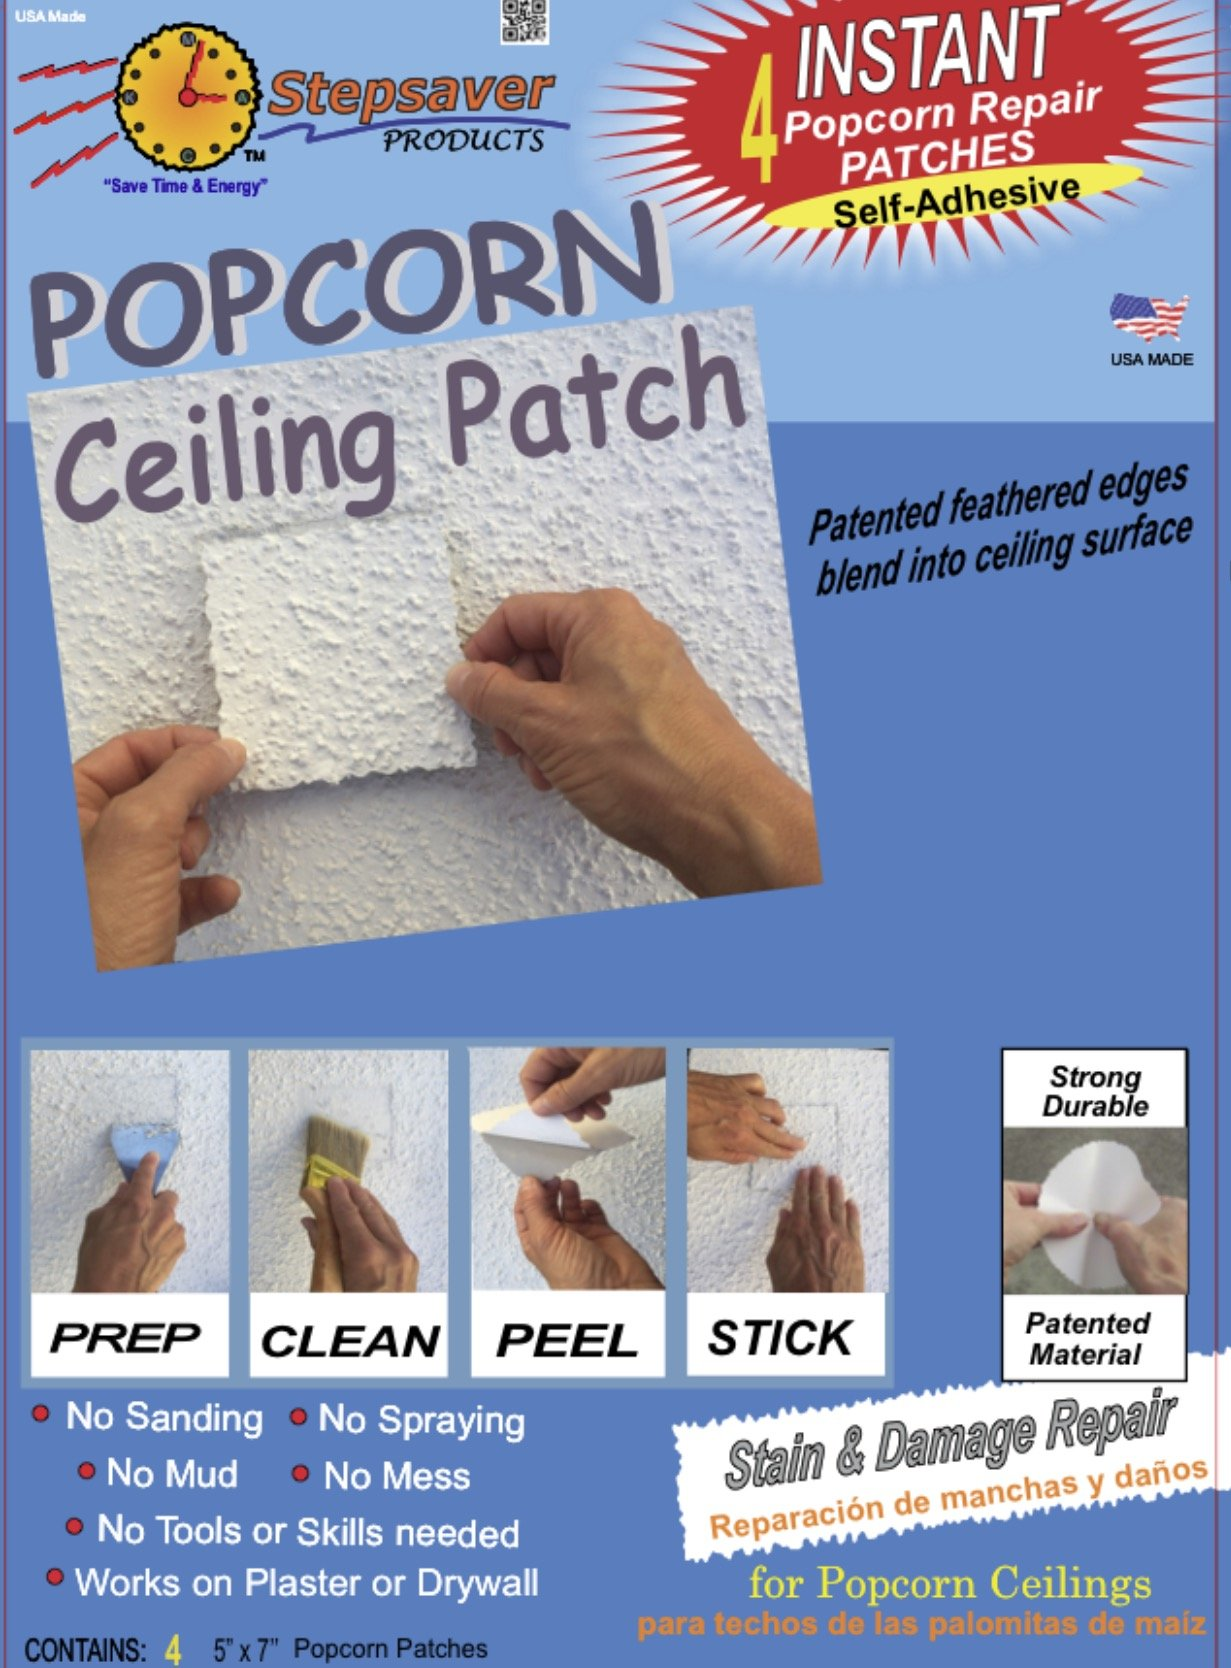 Self-Adhesive Popcorn Ceiling Patch by Stepsavers